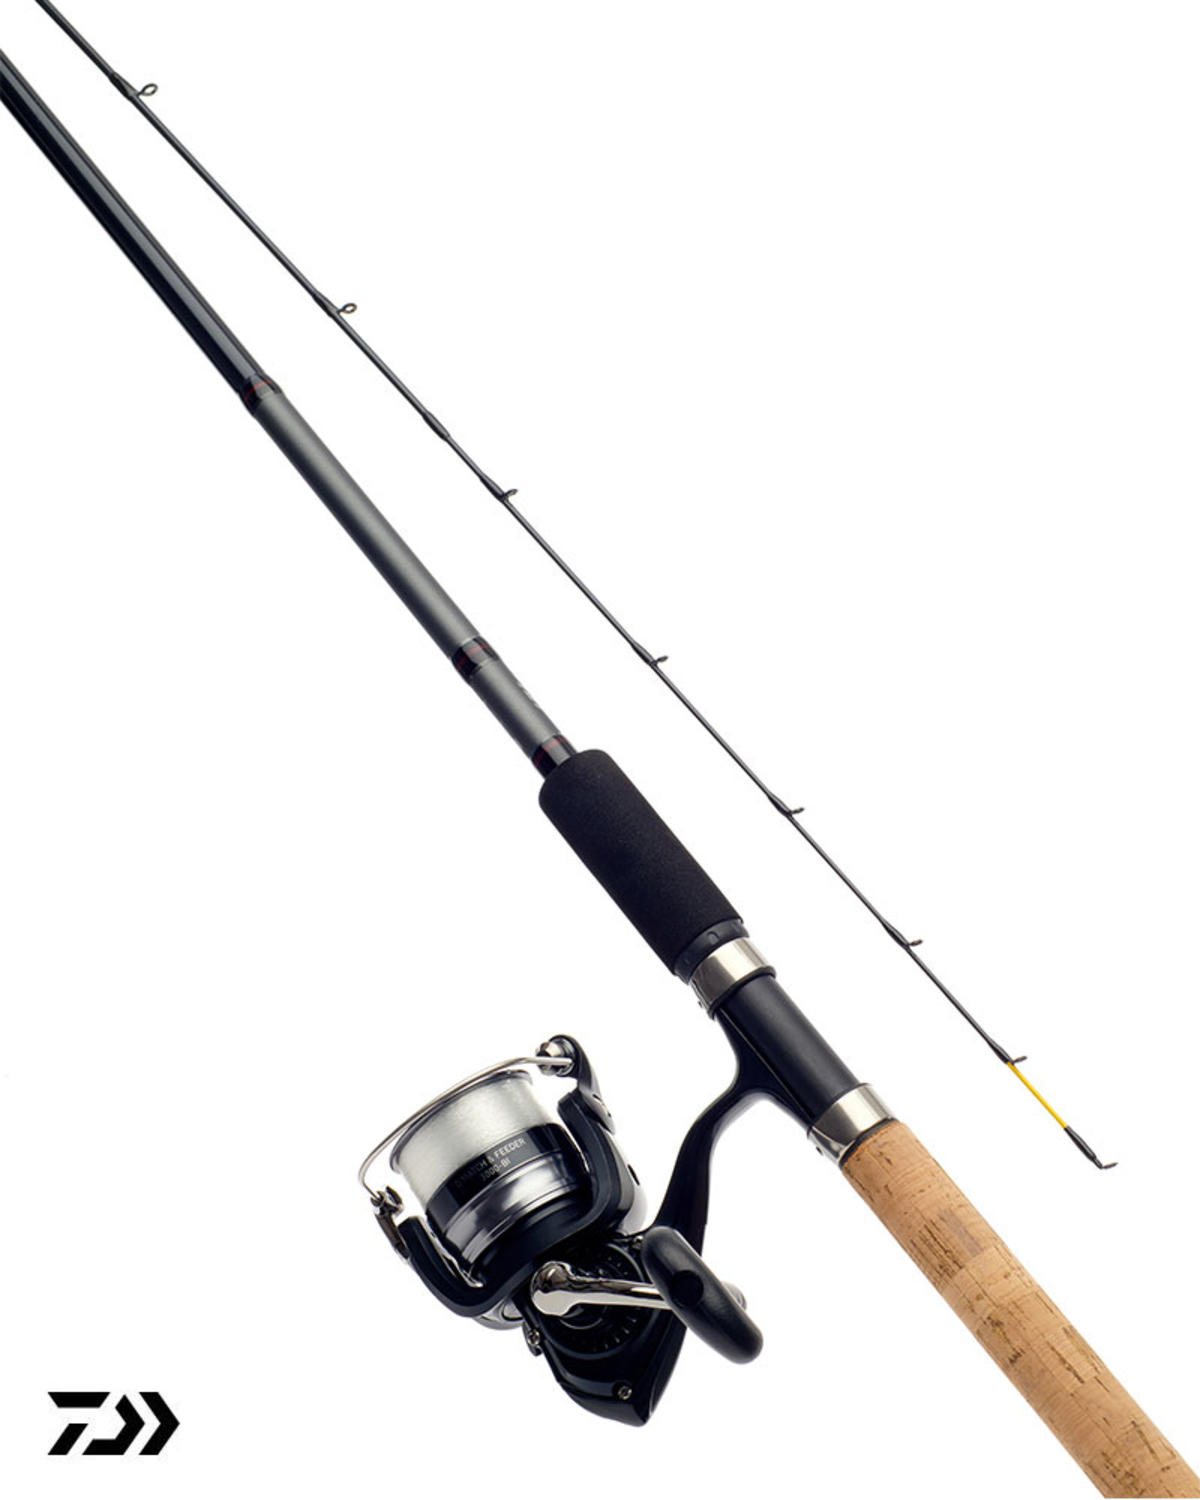 New Daiwa D Feeder Fishing Kit / Combo - 11ft Quiver Rod / DMF3000 Loaded Reel